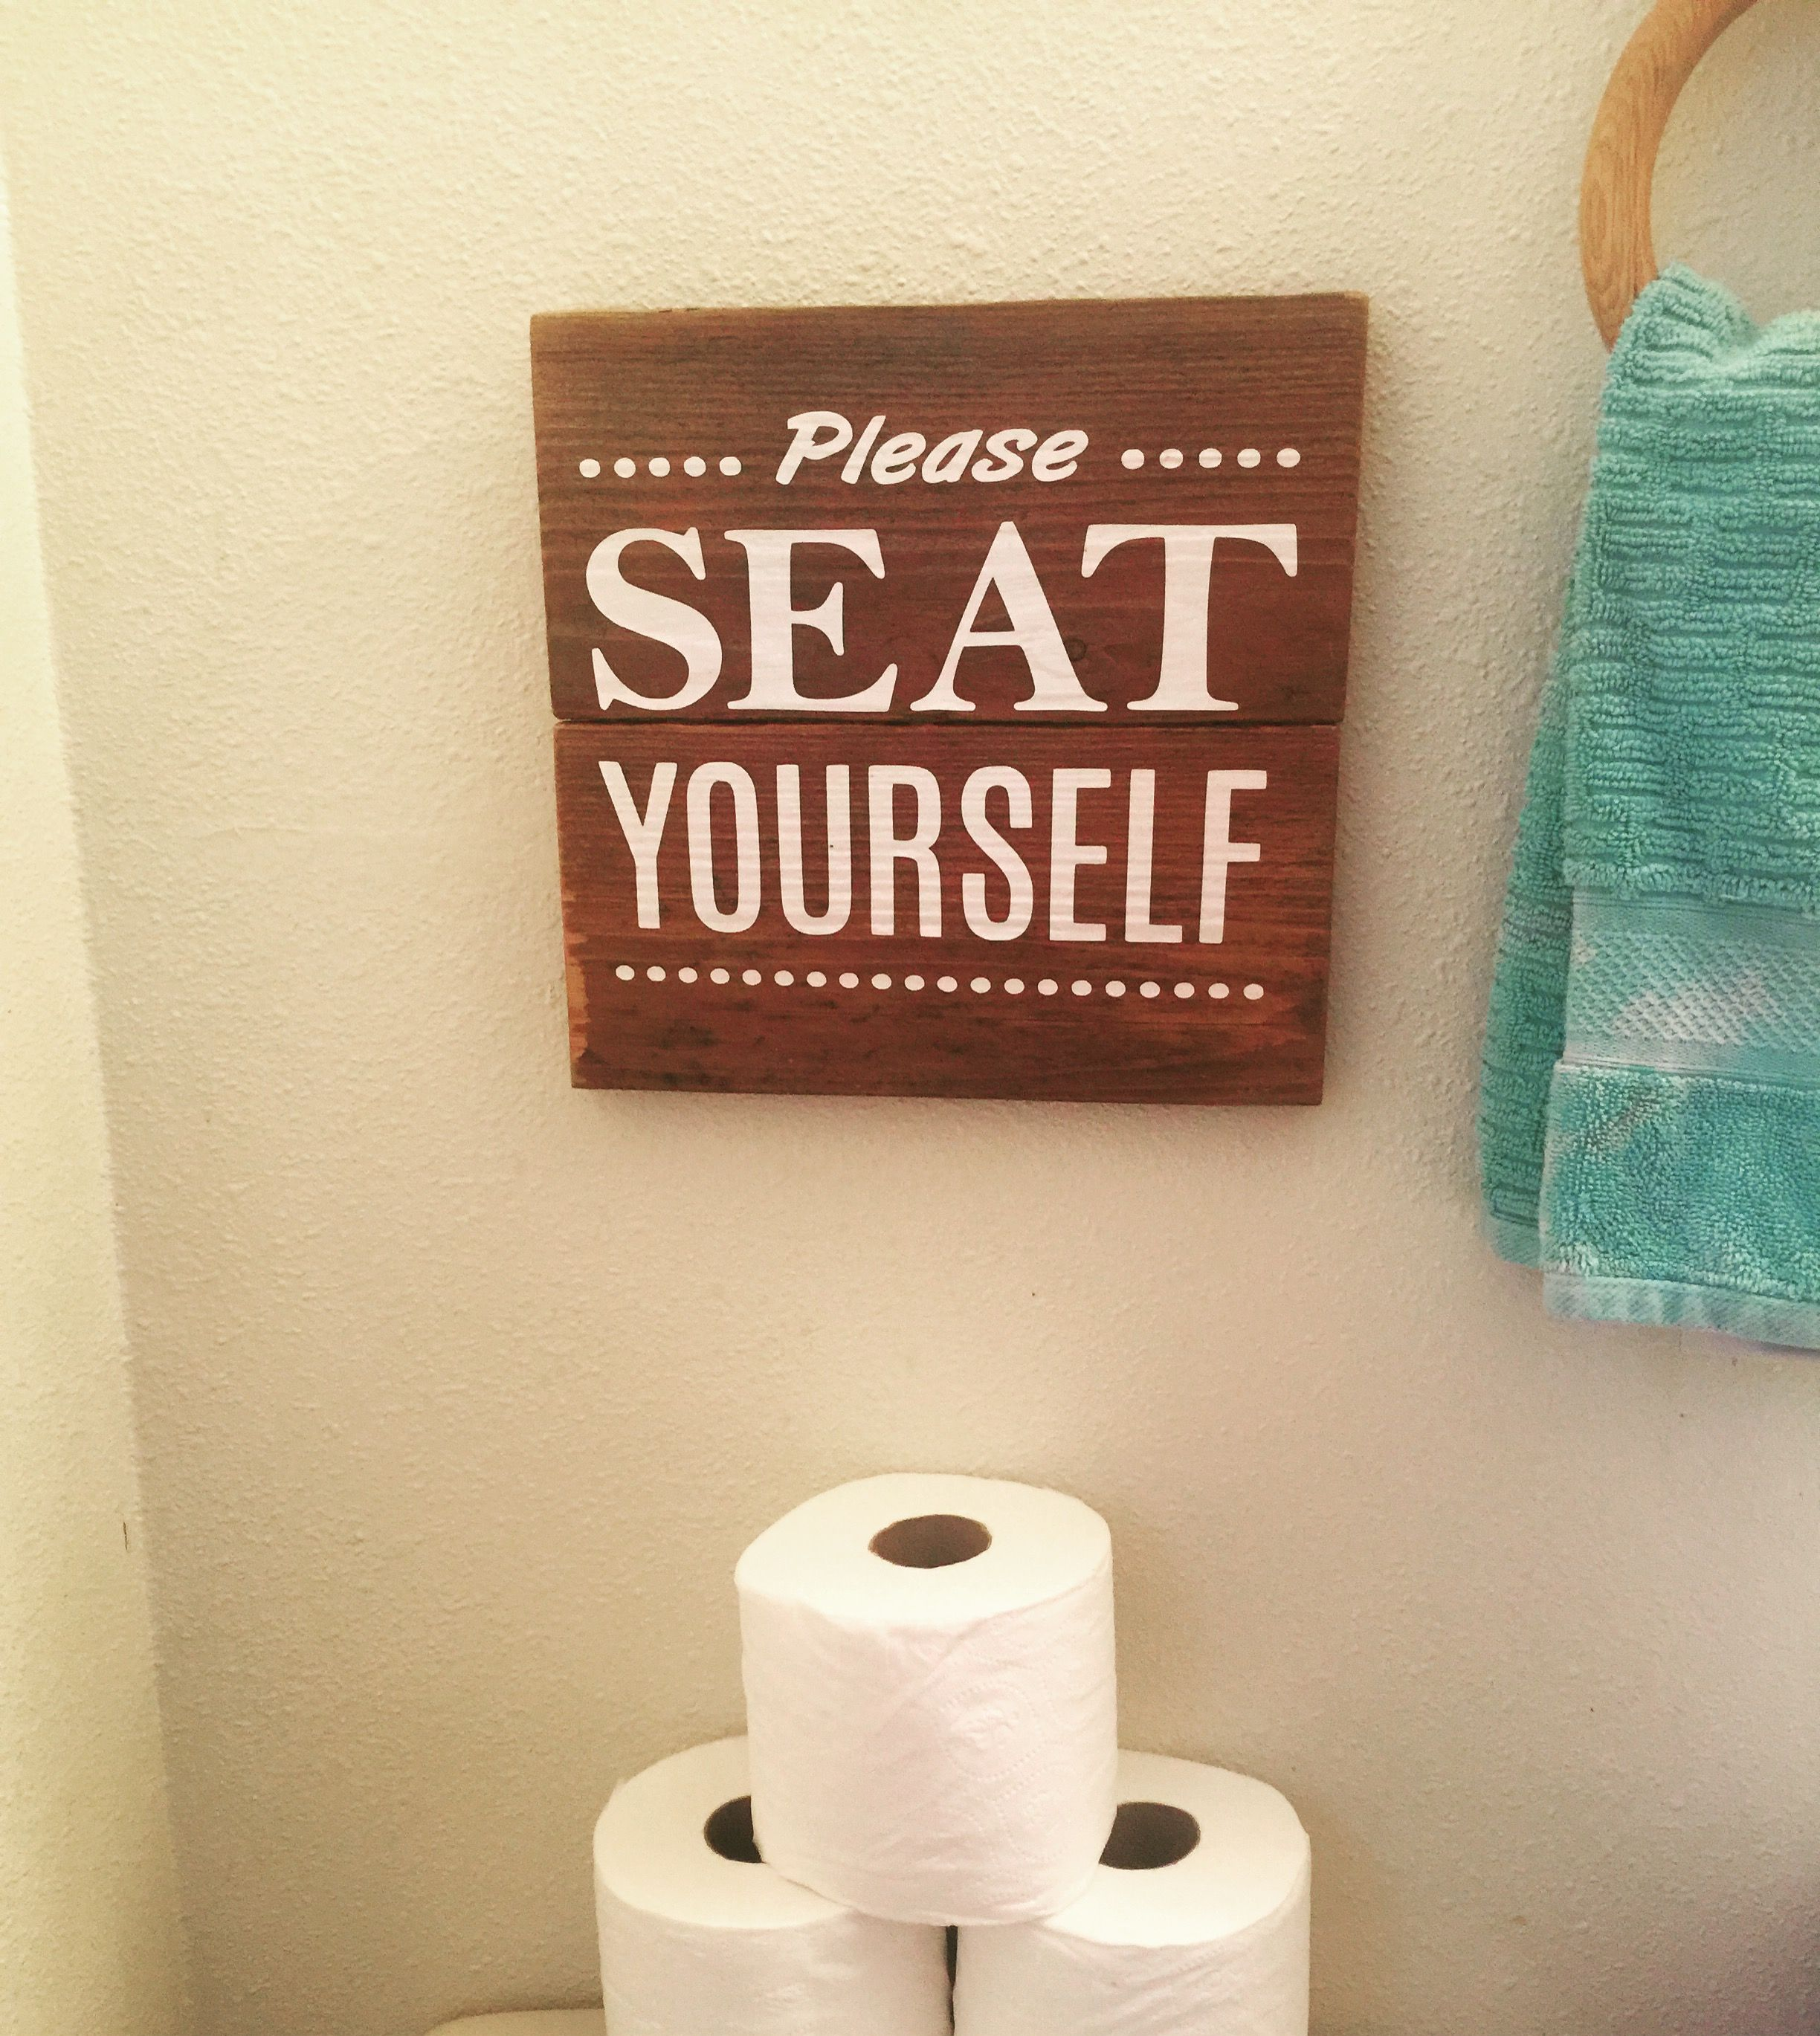 Funny bathroom sign made by farmhouse Clutter www